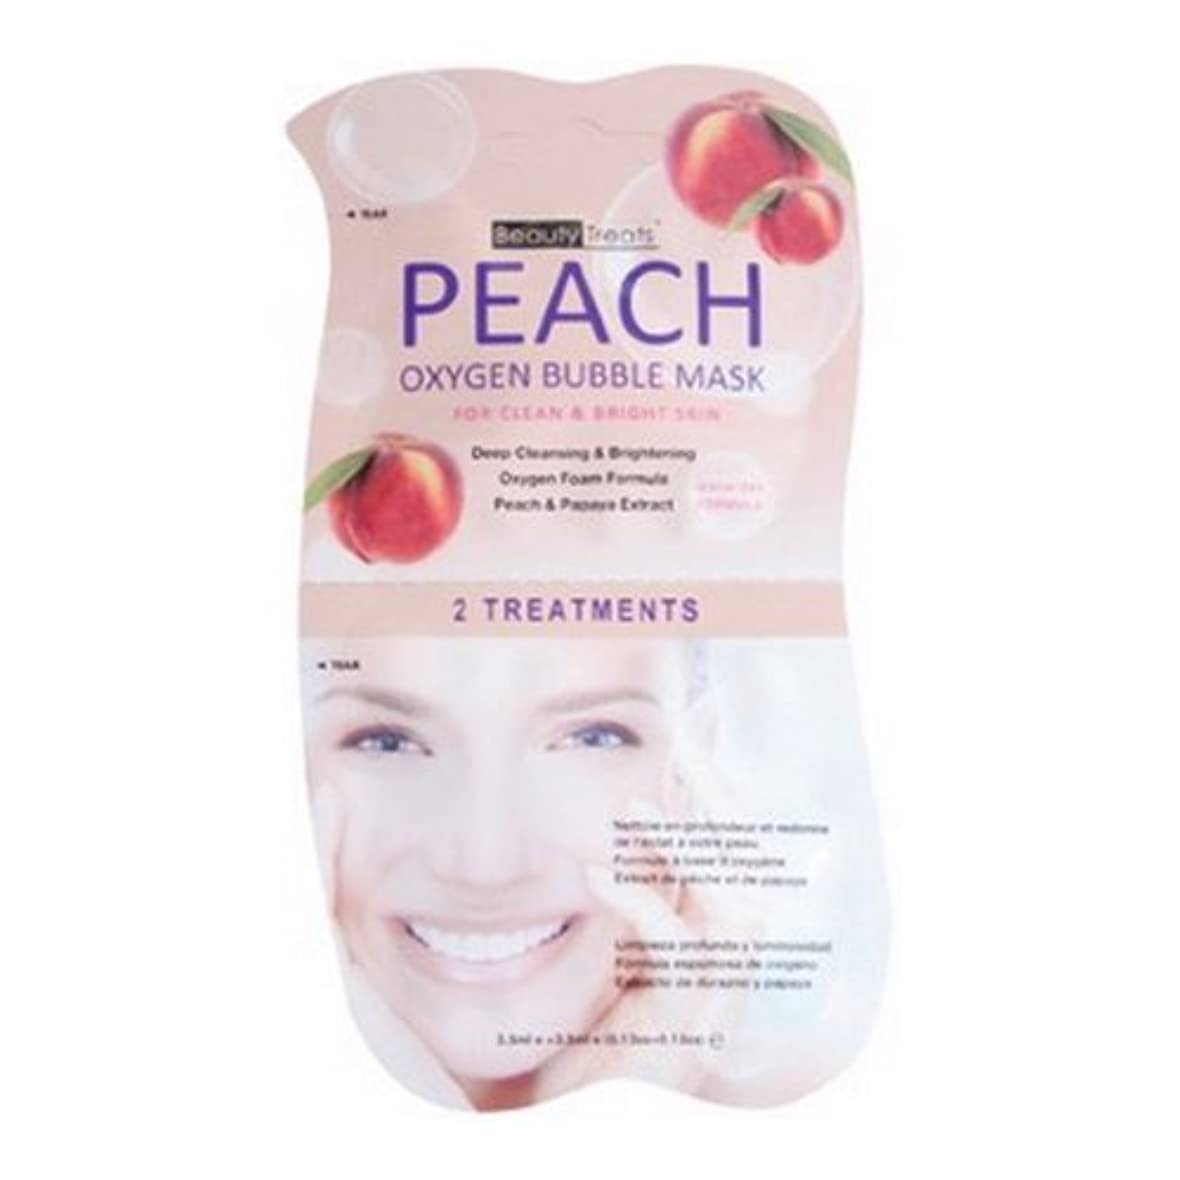 お勧め銅ブラウザ(6 Pack) BEAUTY TREATS Peach Oxygen Bubble Mask - Peach (並行輸入品)